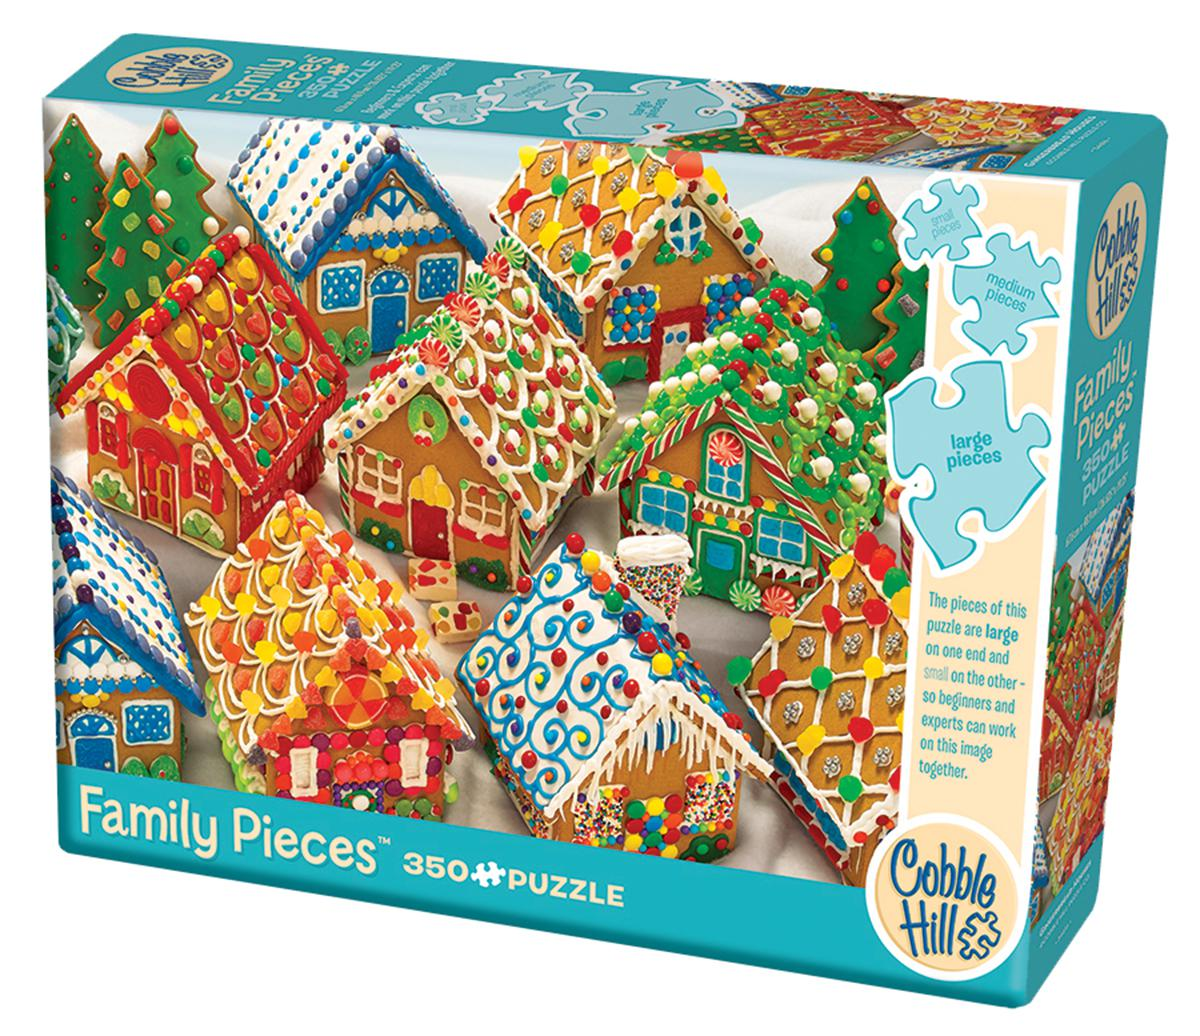 Gingerbread Houses 350 Piece Puzzle